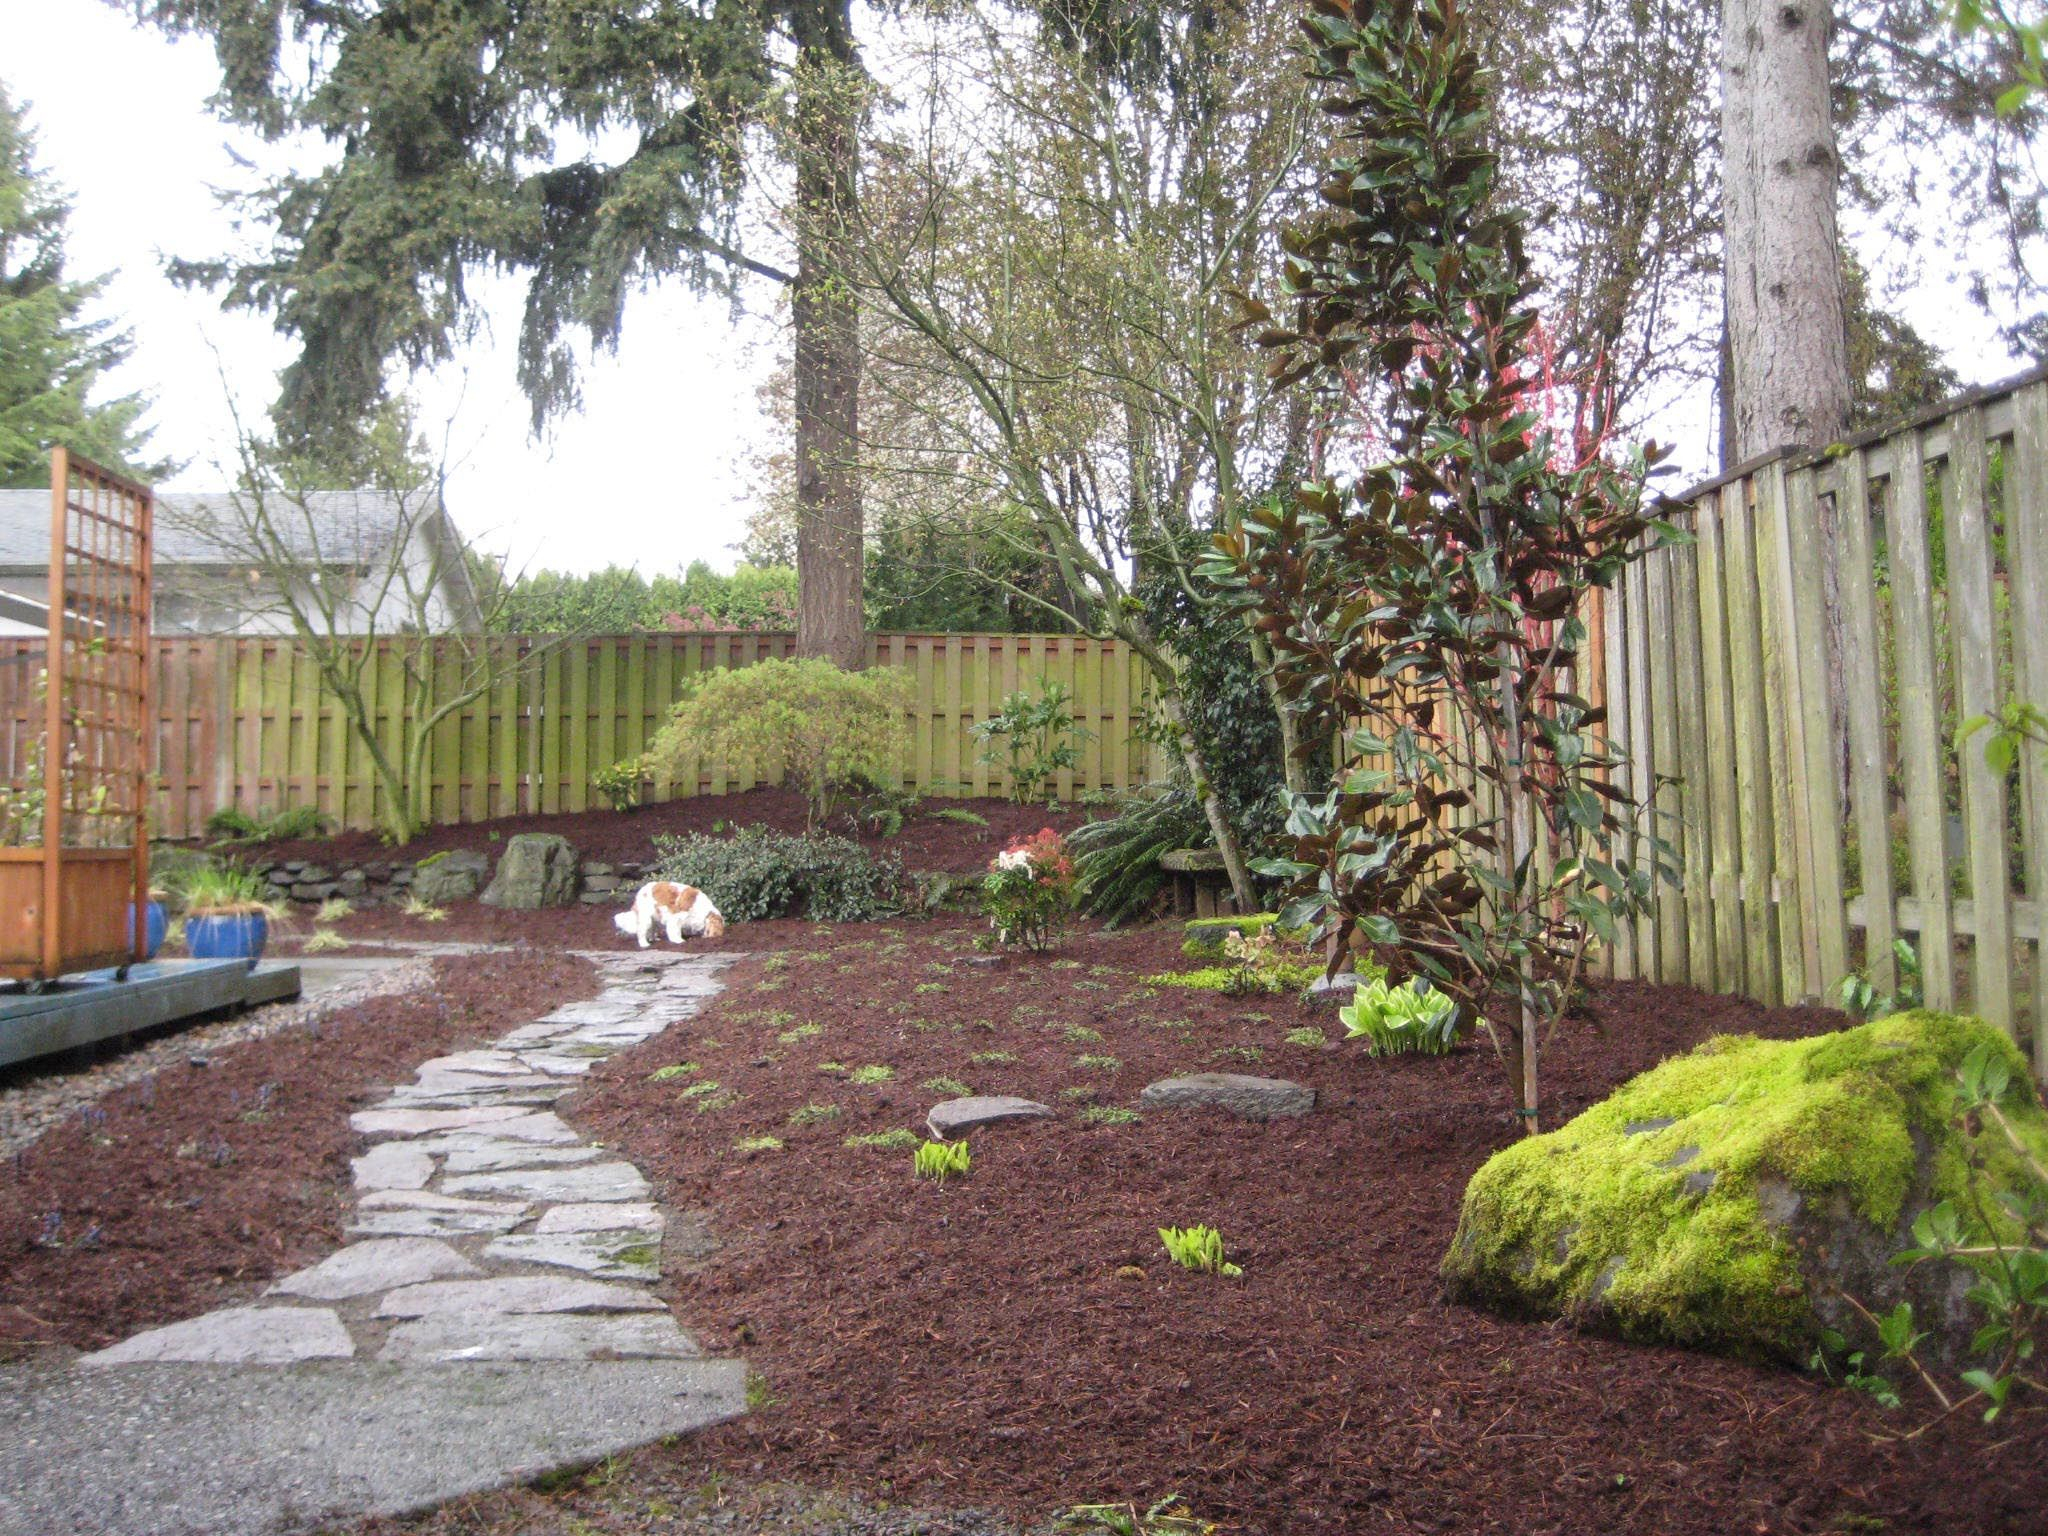 Landscaping Ideas For Small Yards With Dogs Garden Ideas Small inside Backyard Landscaping Ideas For Dogs